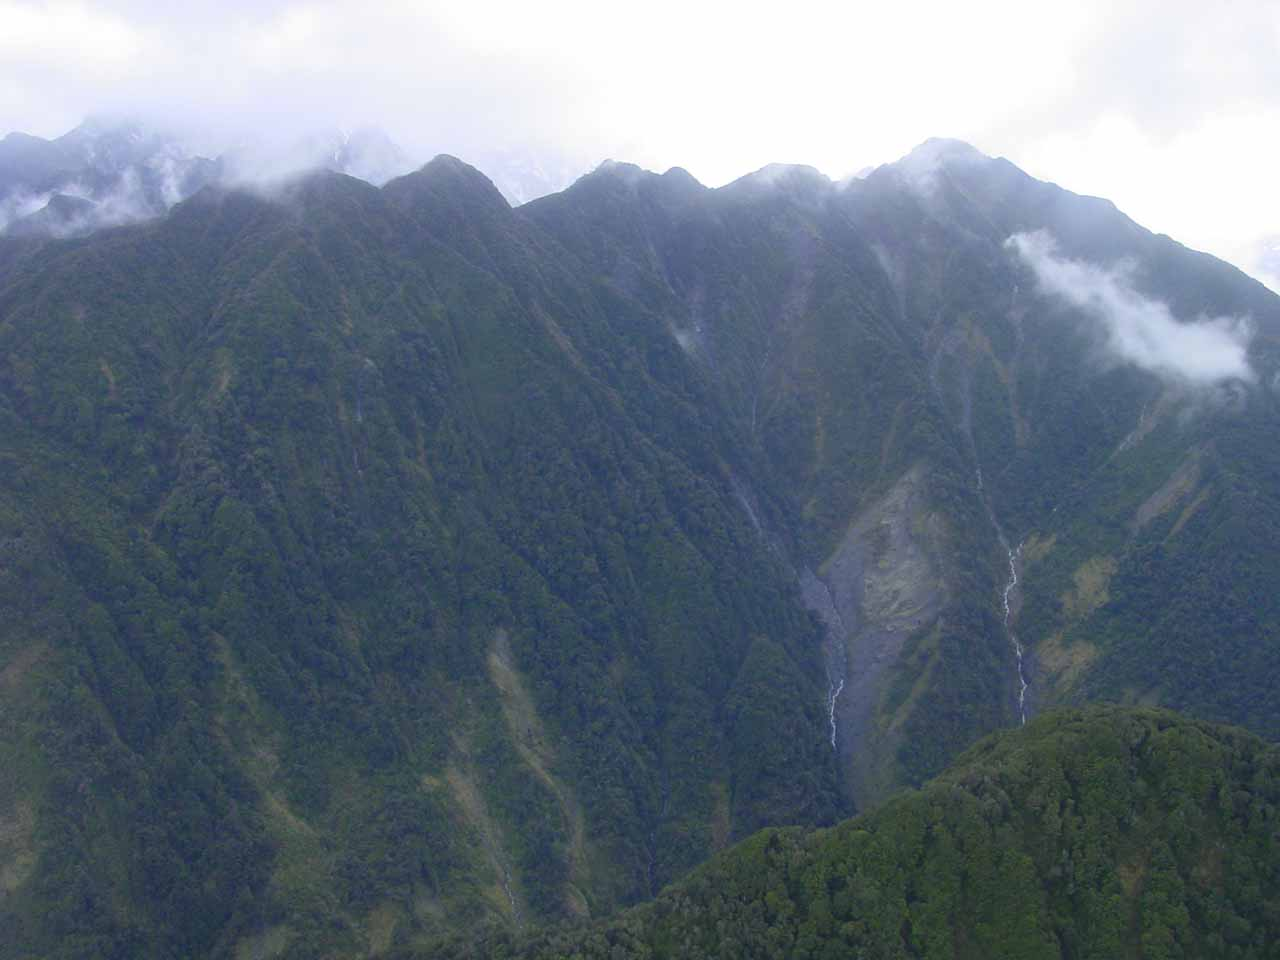 Looking towards the mountains flanking the Franz Josef Glacier